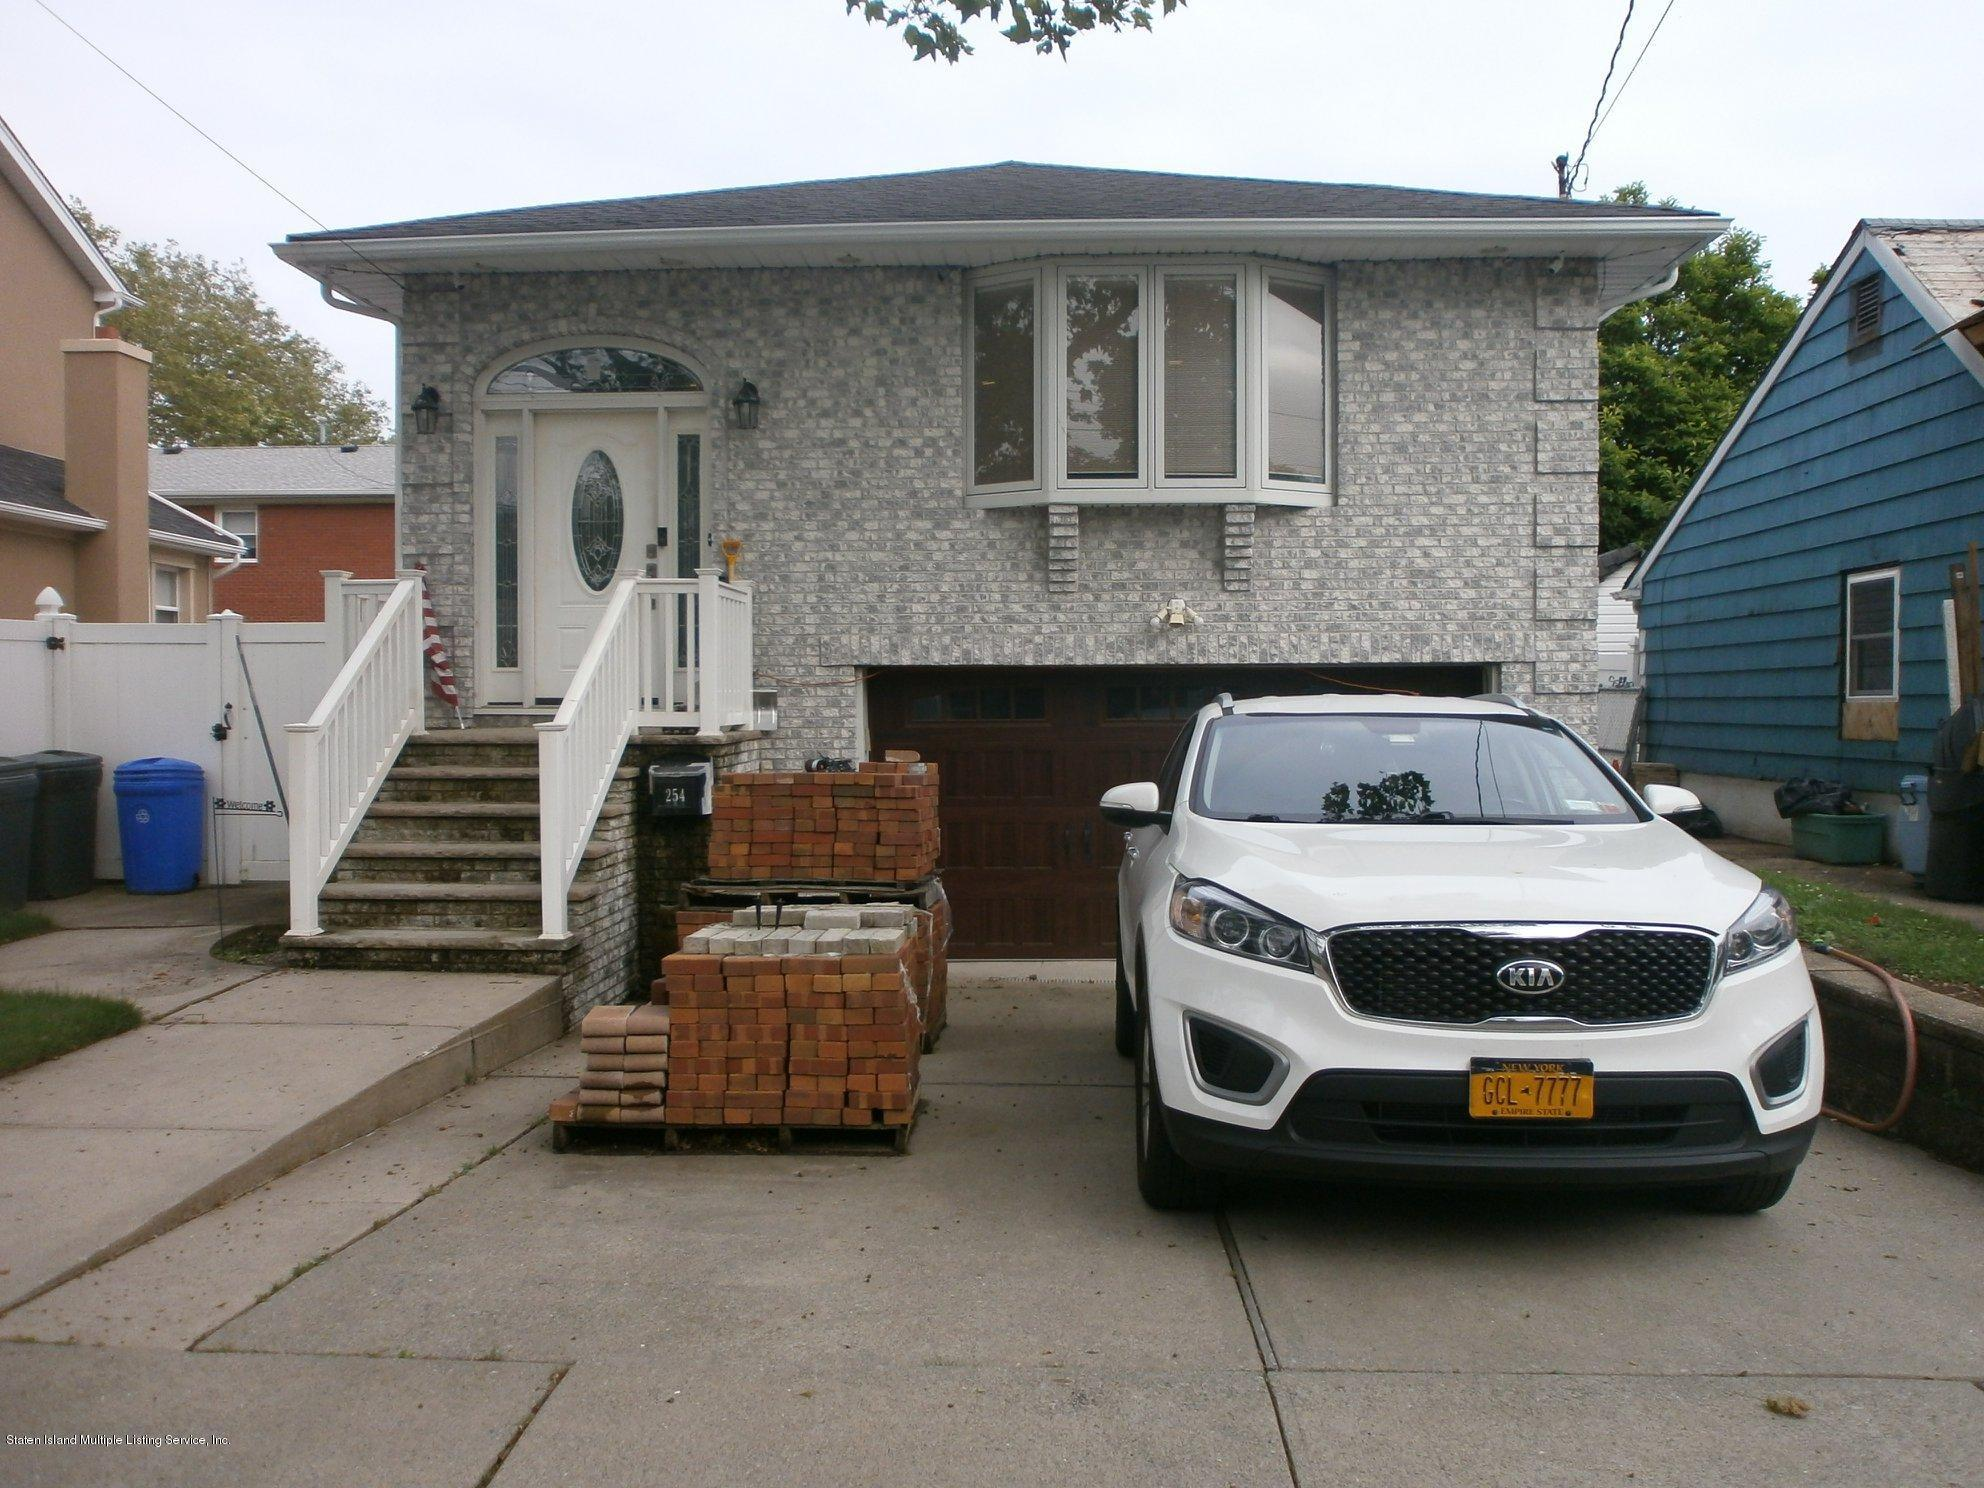 254 10th Street,Staten Island,New York,10306,United States,3 Bedrooms Bedrooms,6 Rooms Rooms,3 BathroomsBathrooms,Residential,10th,1129833